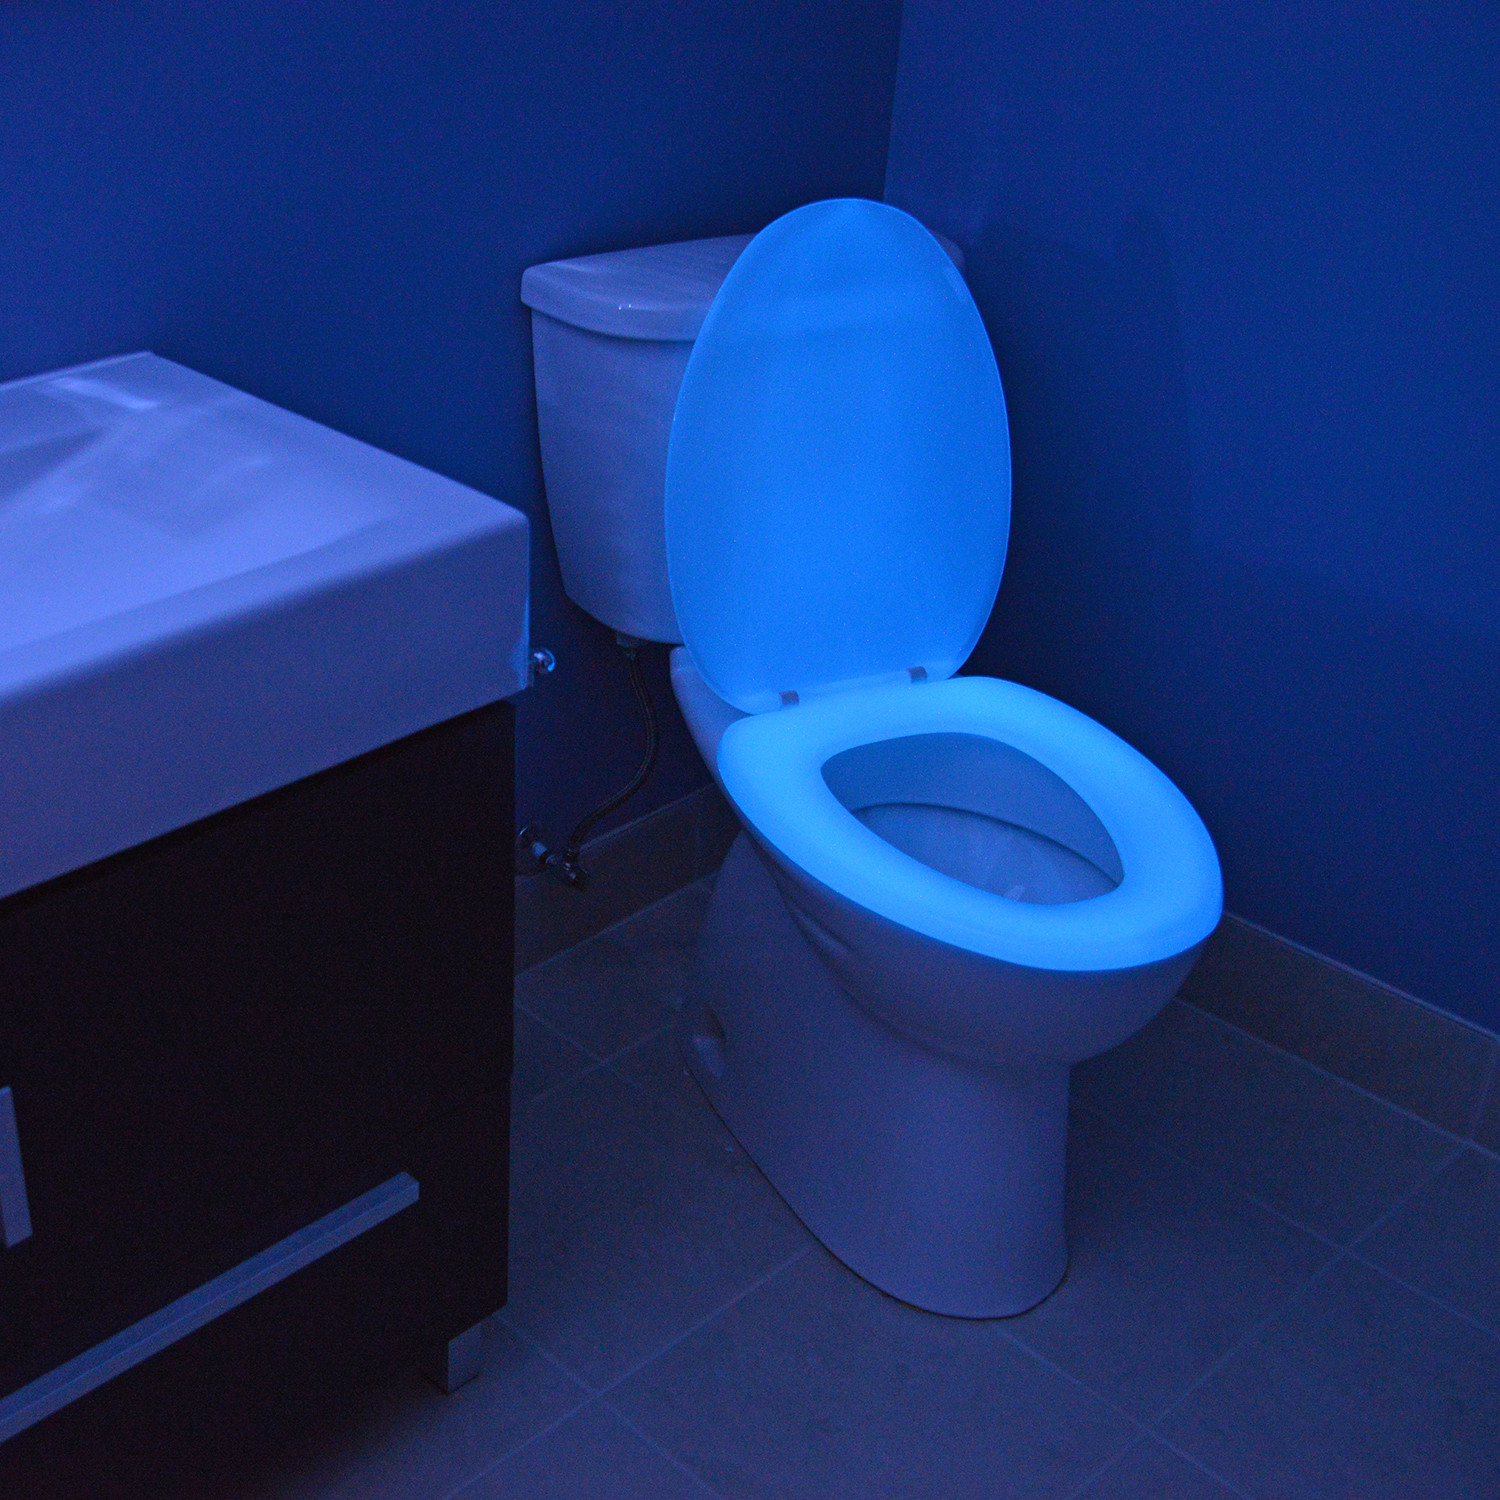 Stupendous Night Glow Seats Elongated Toilet Seat Blue Night Spiritservingveterans Wood Chair Design Ideas Spiritservingveteransorg